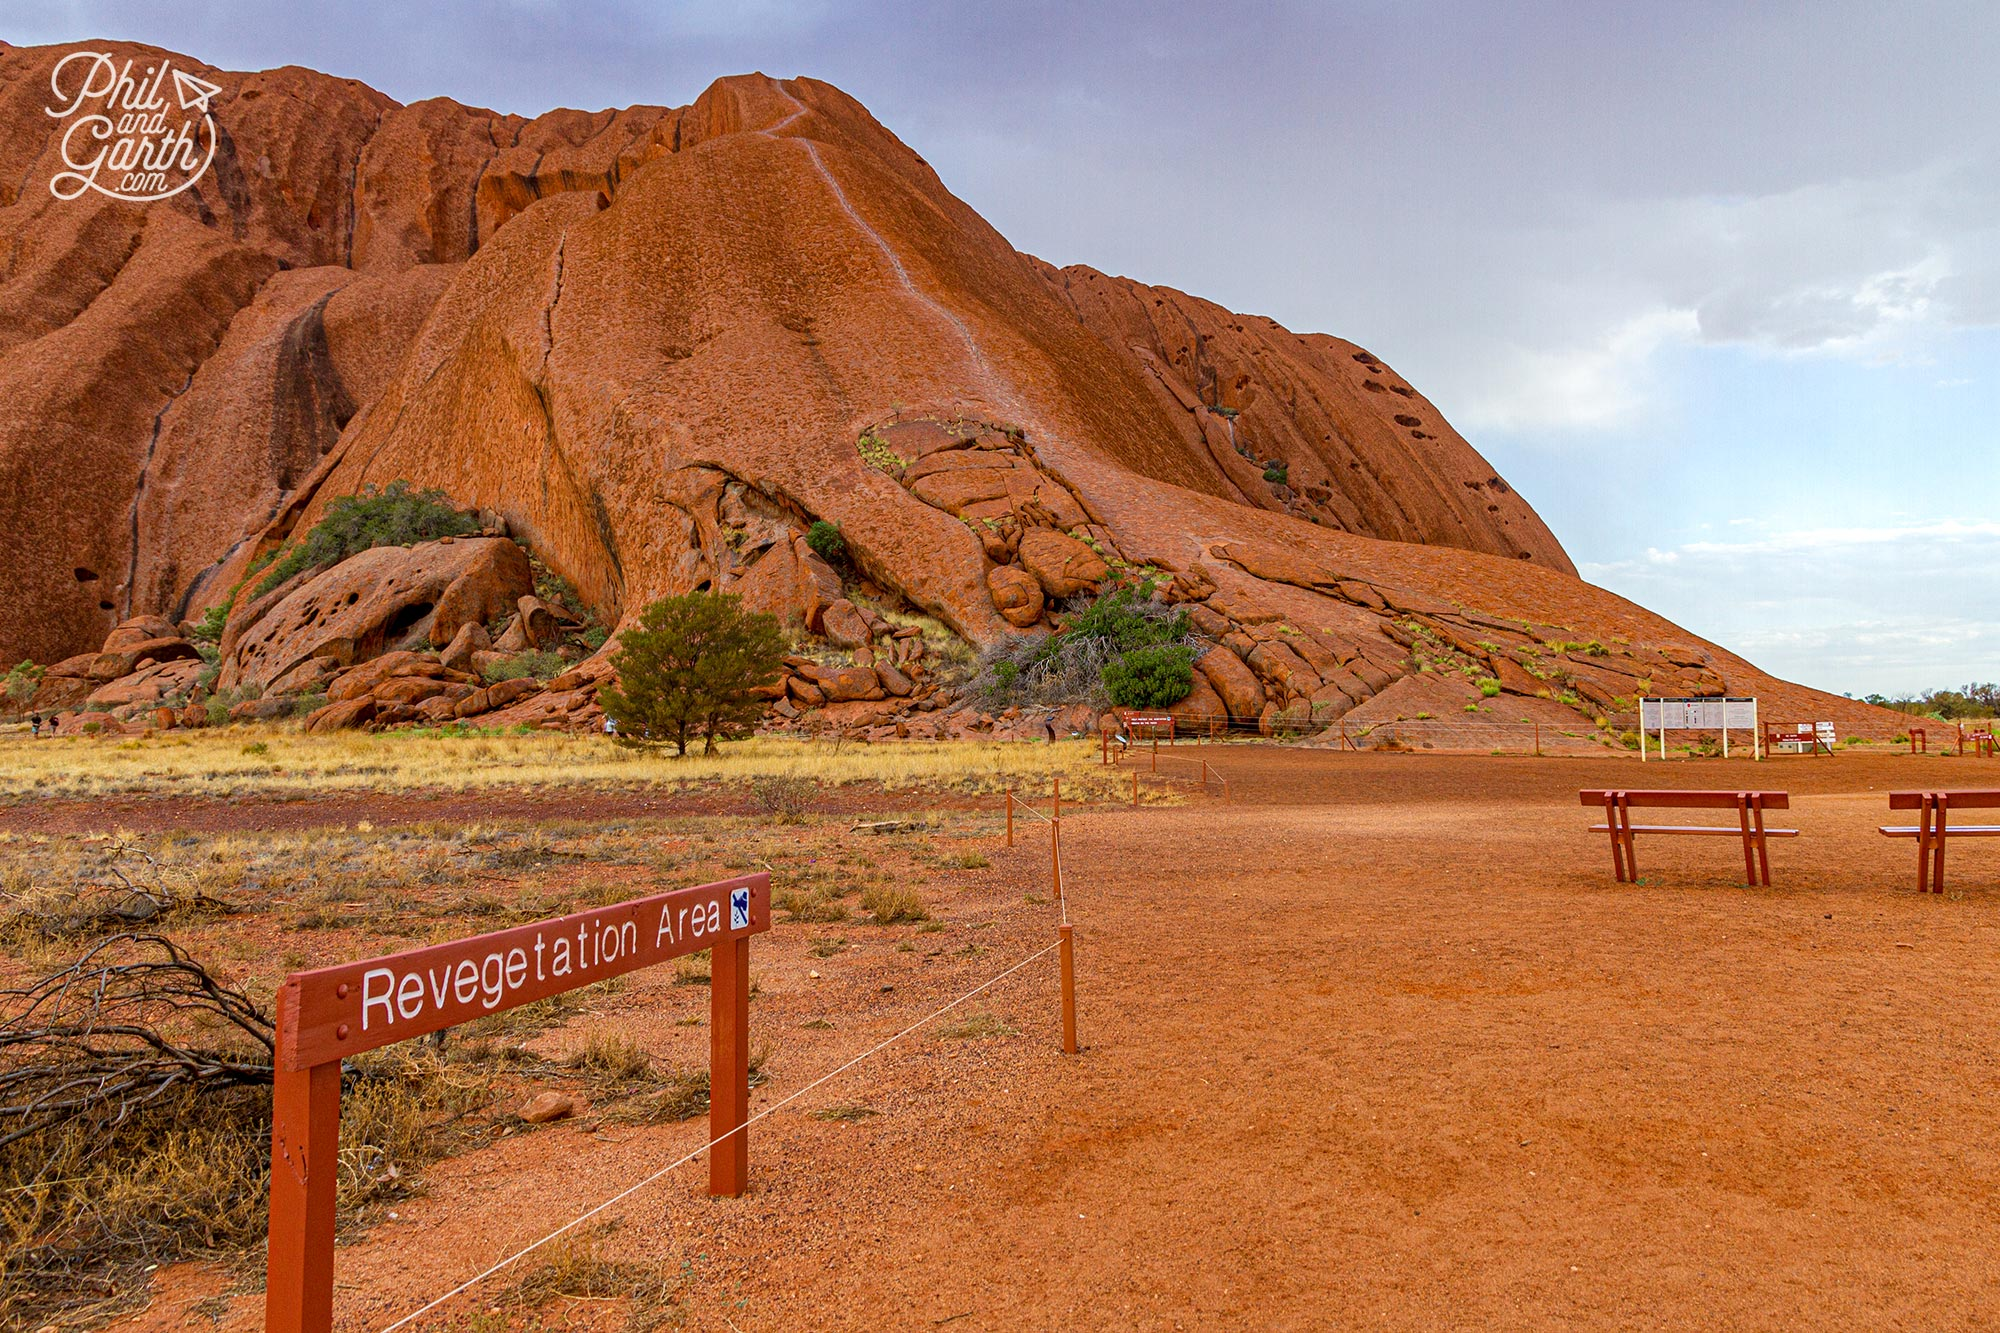 Climbing up to the top of Uluru was banned in 2019